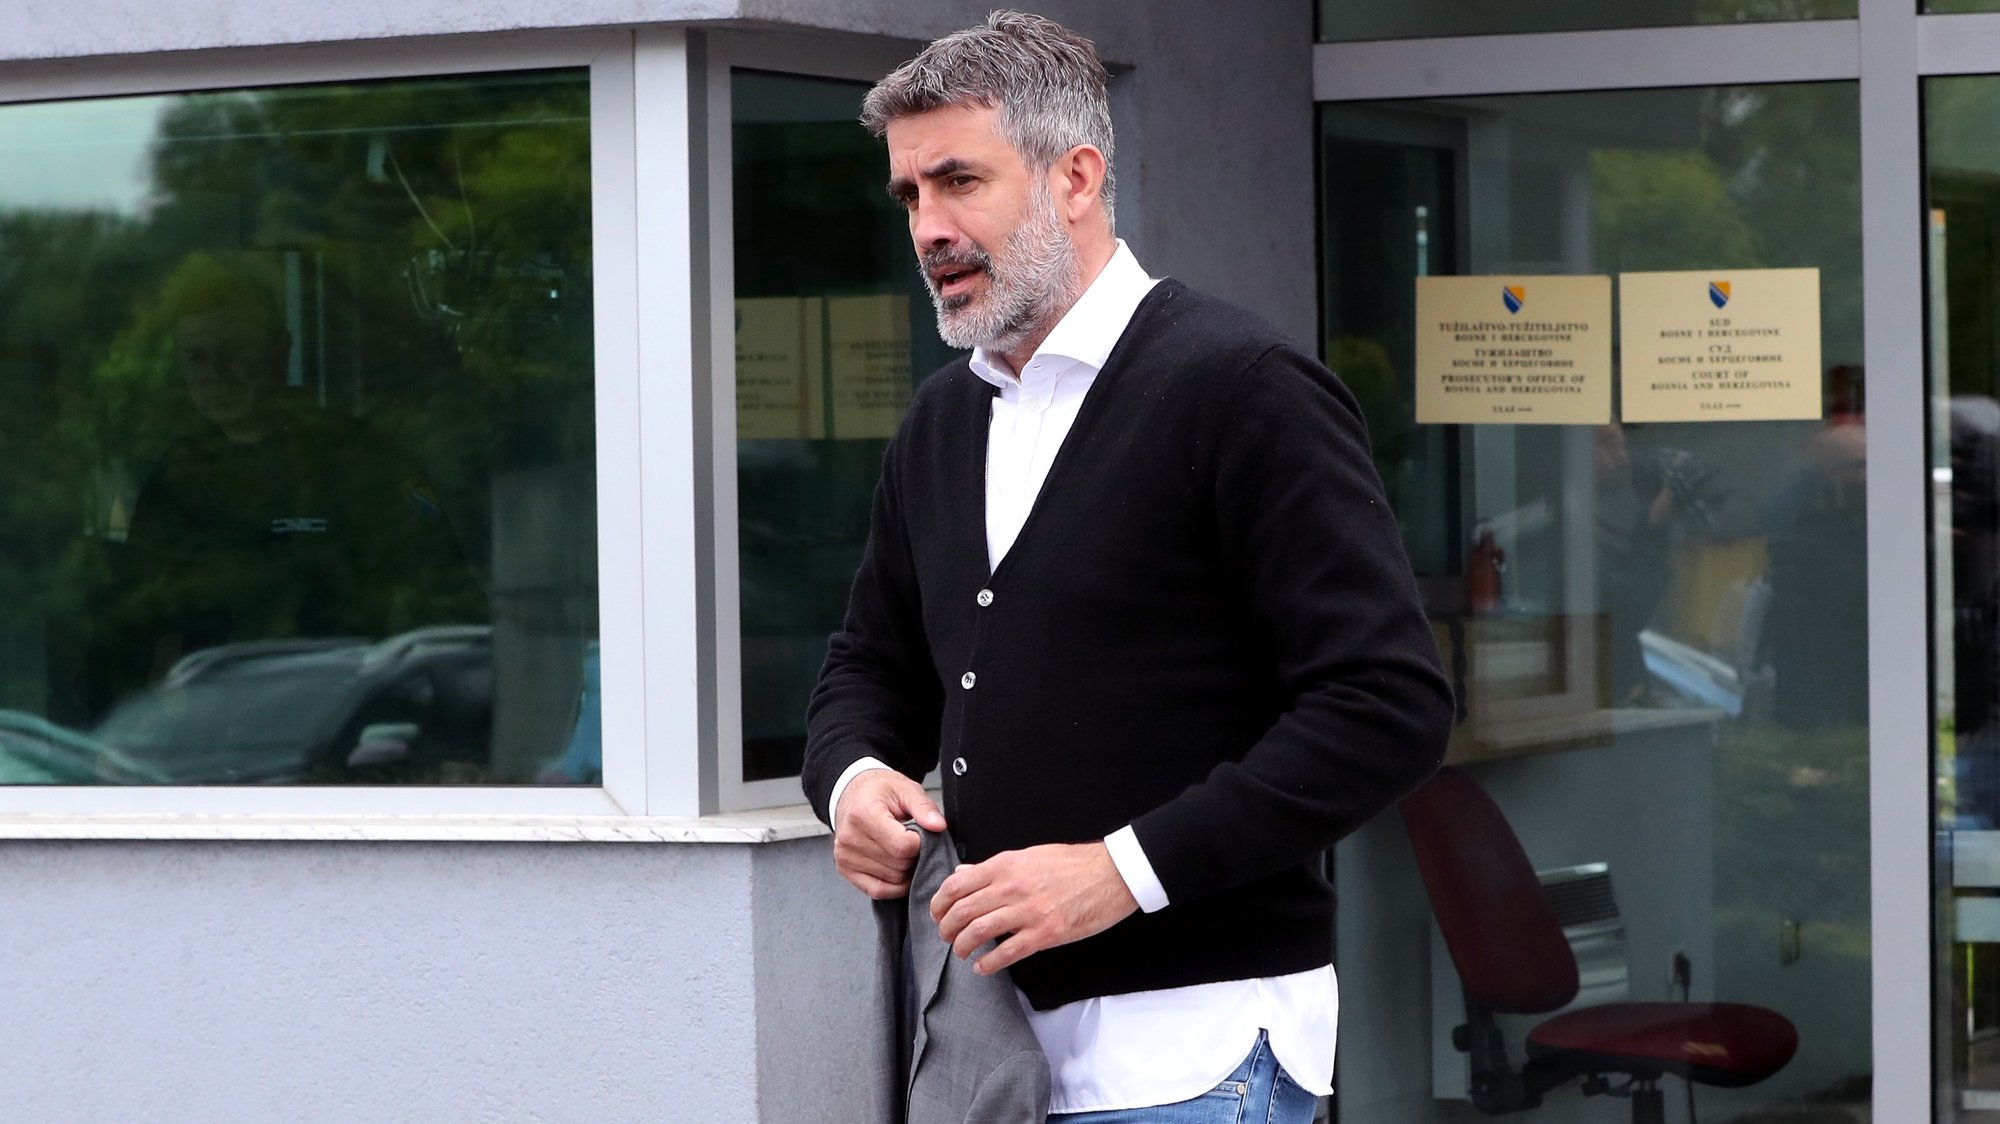 epa09211612 Zoran Mamic, the former coach of Dinamo football club from Zagreb, Croatia, arrives at the State Court of Bosnia and Herzegovina, in Sarajevo, 19 May 2021. Mamic was arrested earlr this morning in the Bosnian village of Medjugorje, some 150 kilometers from Sarajevo, on the basis of an international red warrant on request of Interpol in Zagreb, aimed at extraditing him to Croatia for the execution of a court judgment. Zoran Mamic was sentenced to 4 years and 8 months in prison in Croatia for withdrawing money from the Dinamo Zagreb soccer club.  EPA/FEHIM DEMIR